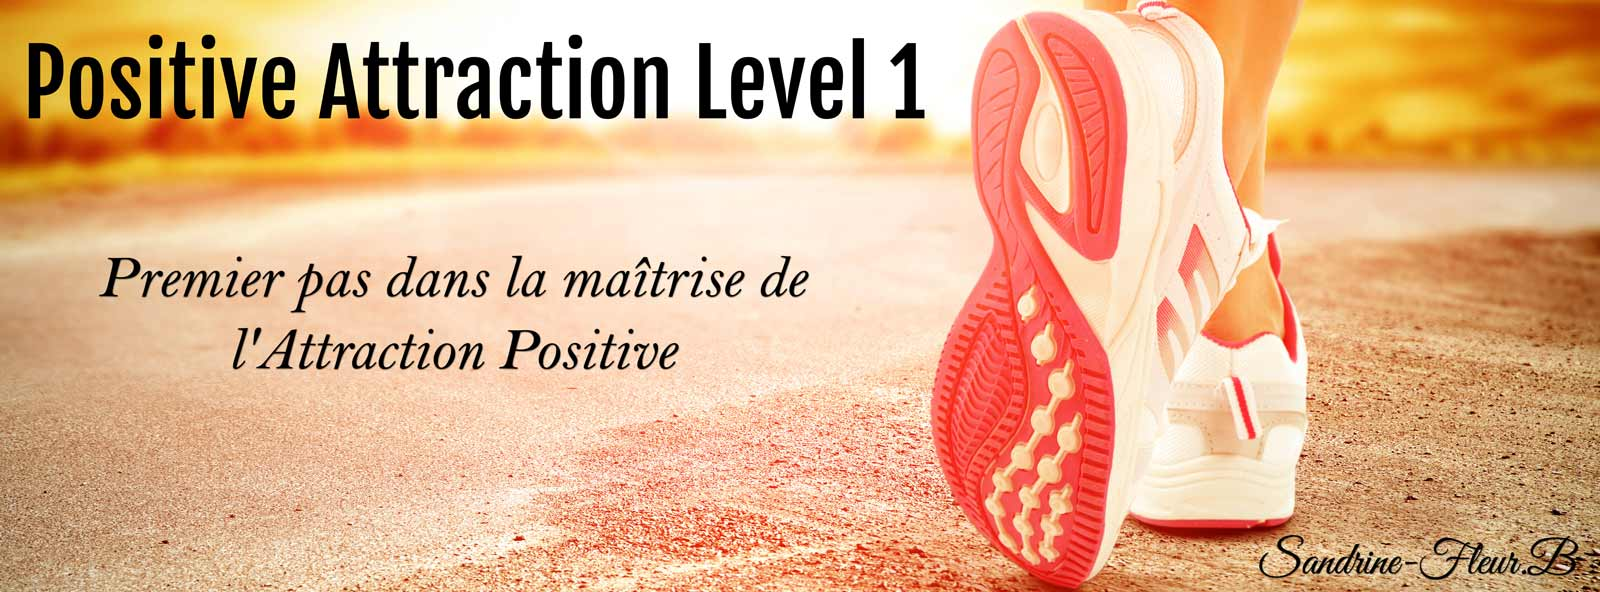 Positive Attraction Level 1